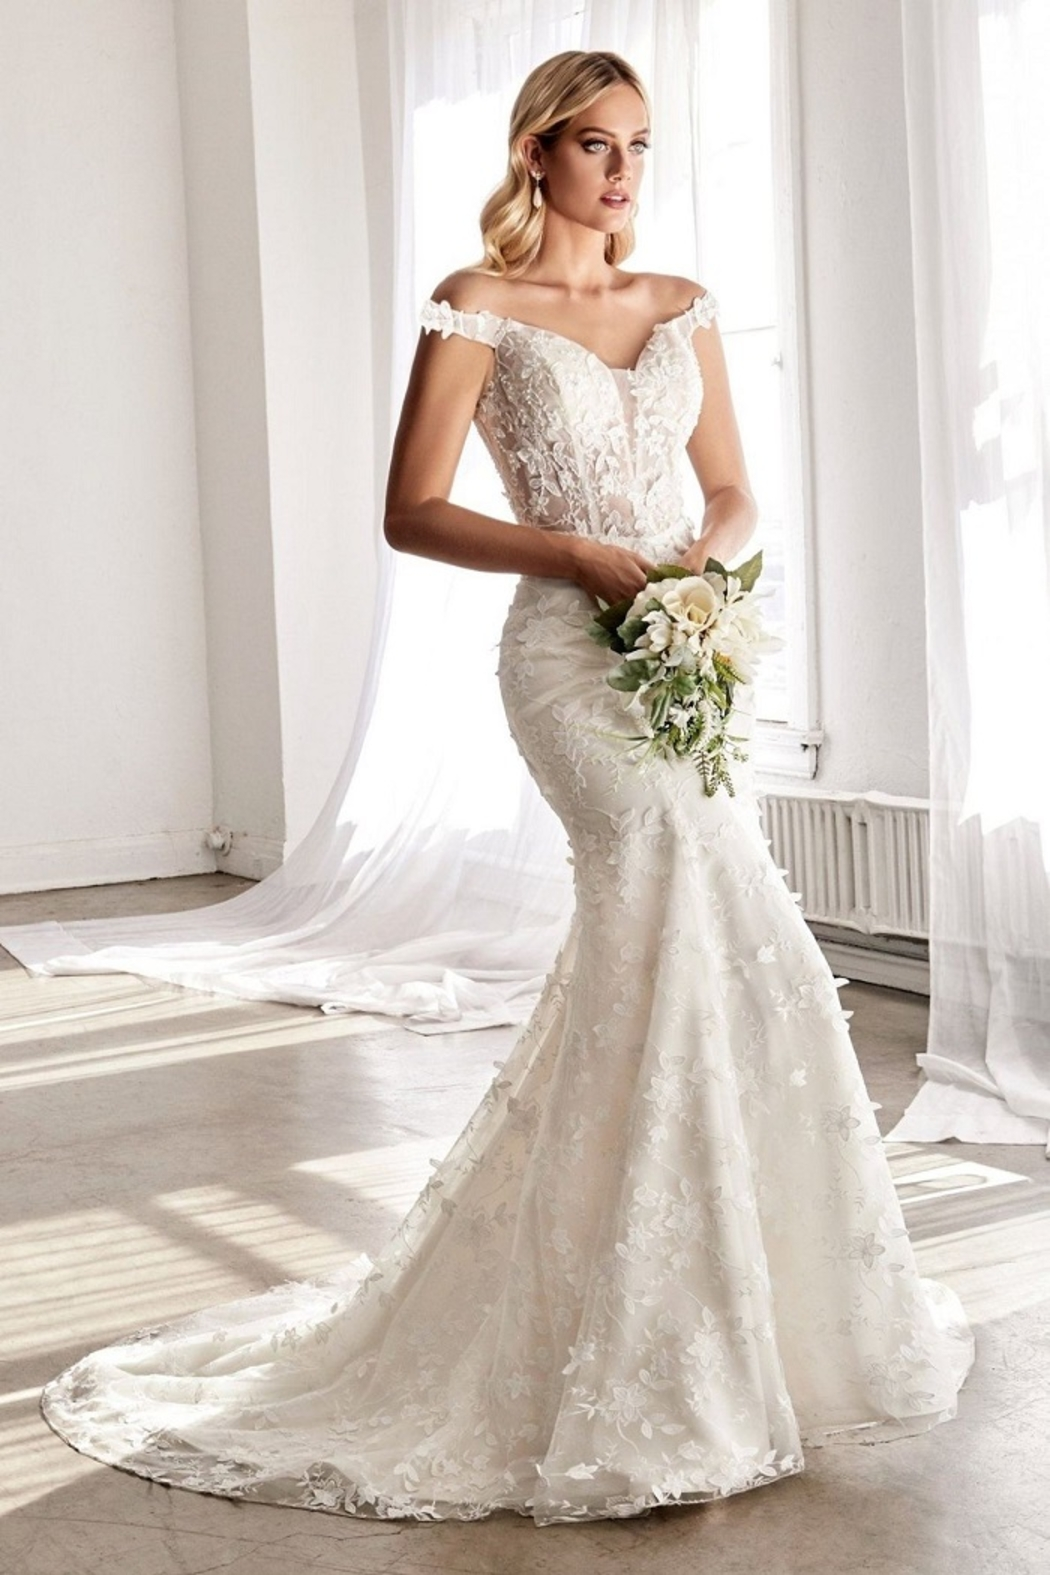 Cinderella Divine Off White Fit & Flare Floral Bridal Gown - Main Image